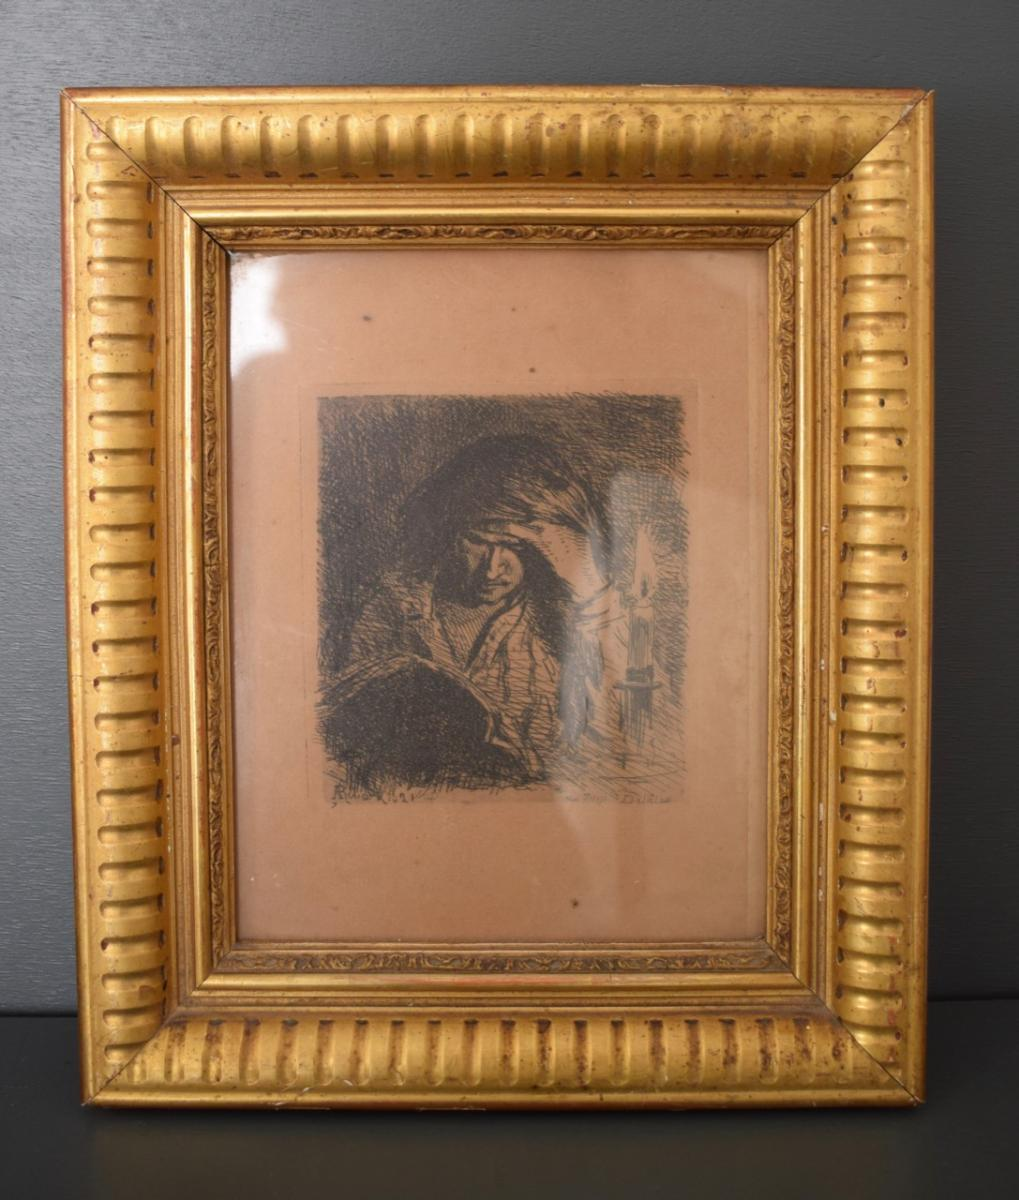 Frame D Restoration Period In Wood And Stucco Gilded